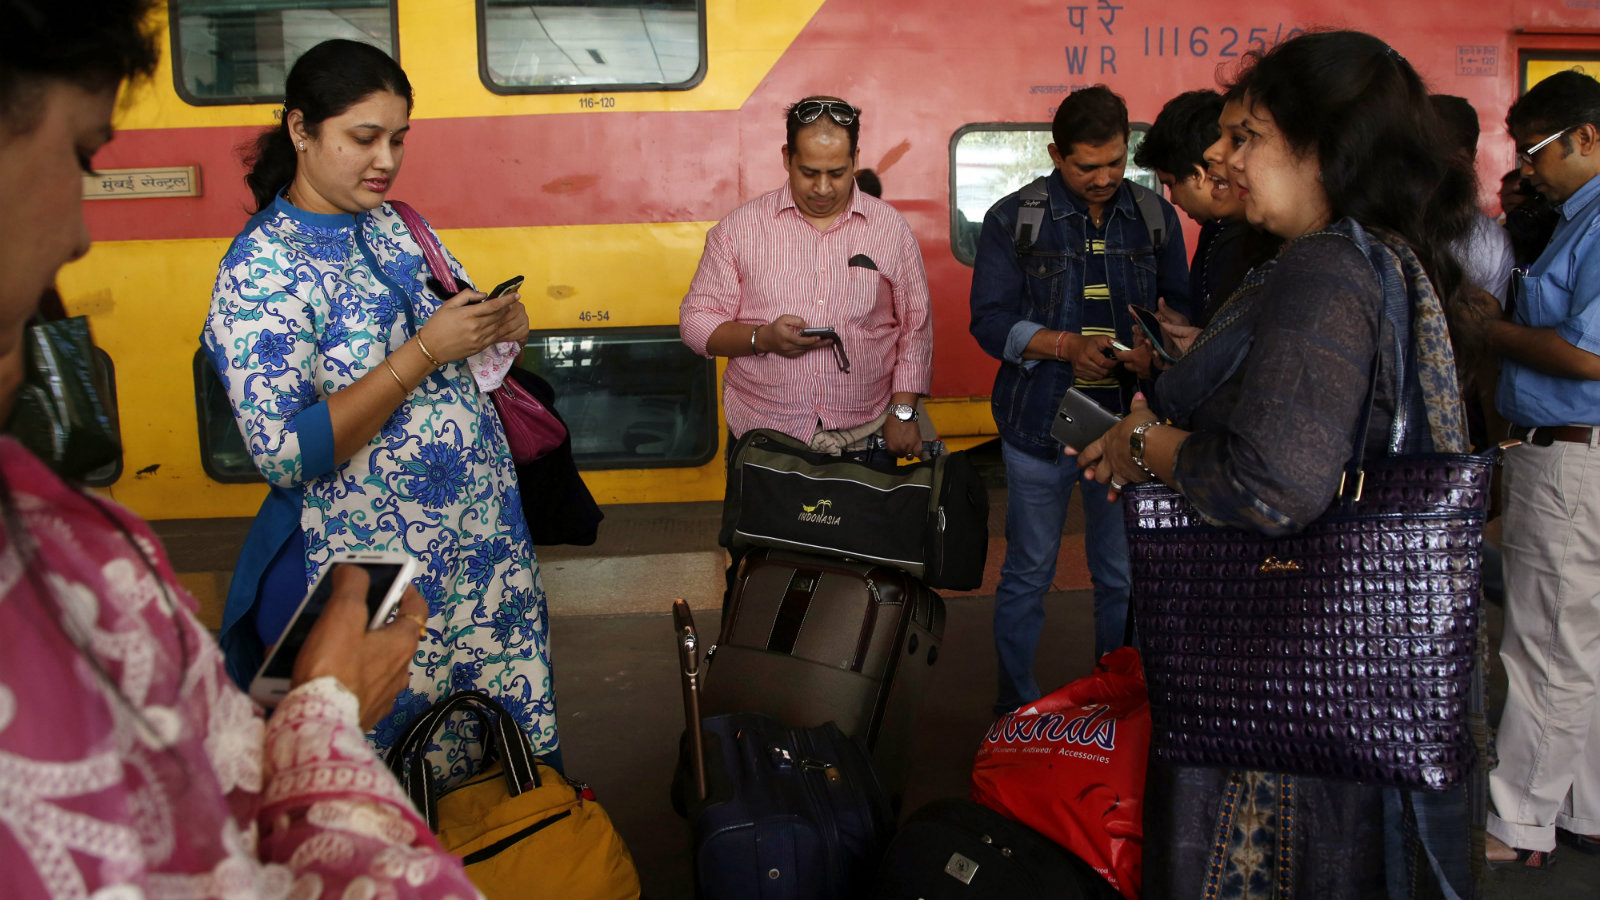 Indian travellers use a free WiFi service to browse the net at Mumbai Central Train Station in Mumbai, India, Friday, Jan. 22, 2016. Google Inc. has begun offering free WiFi to Mumbai train passengers in hopes of boosting its role in the Indian market, the first of 400 stations the company plans to eventually reach with the service.